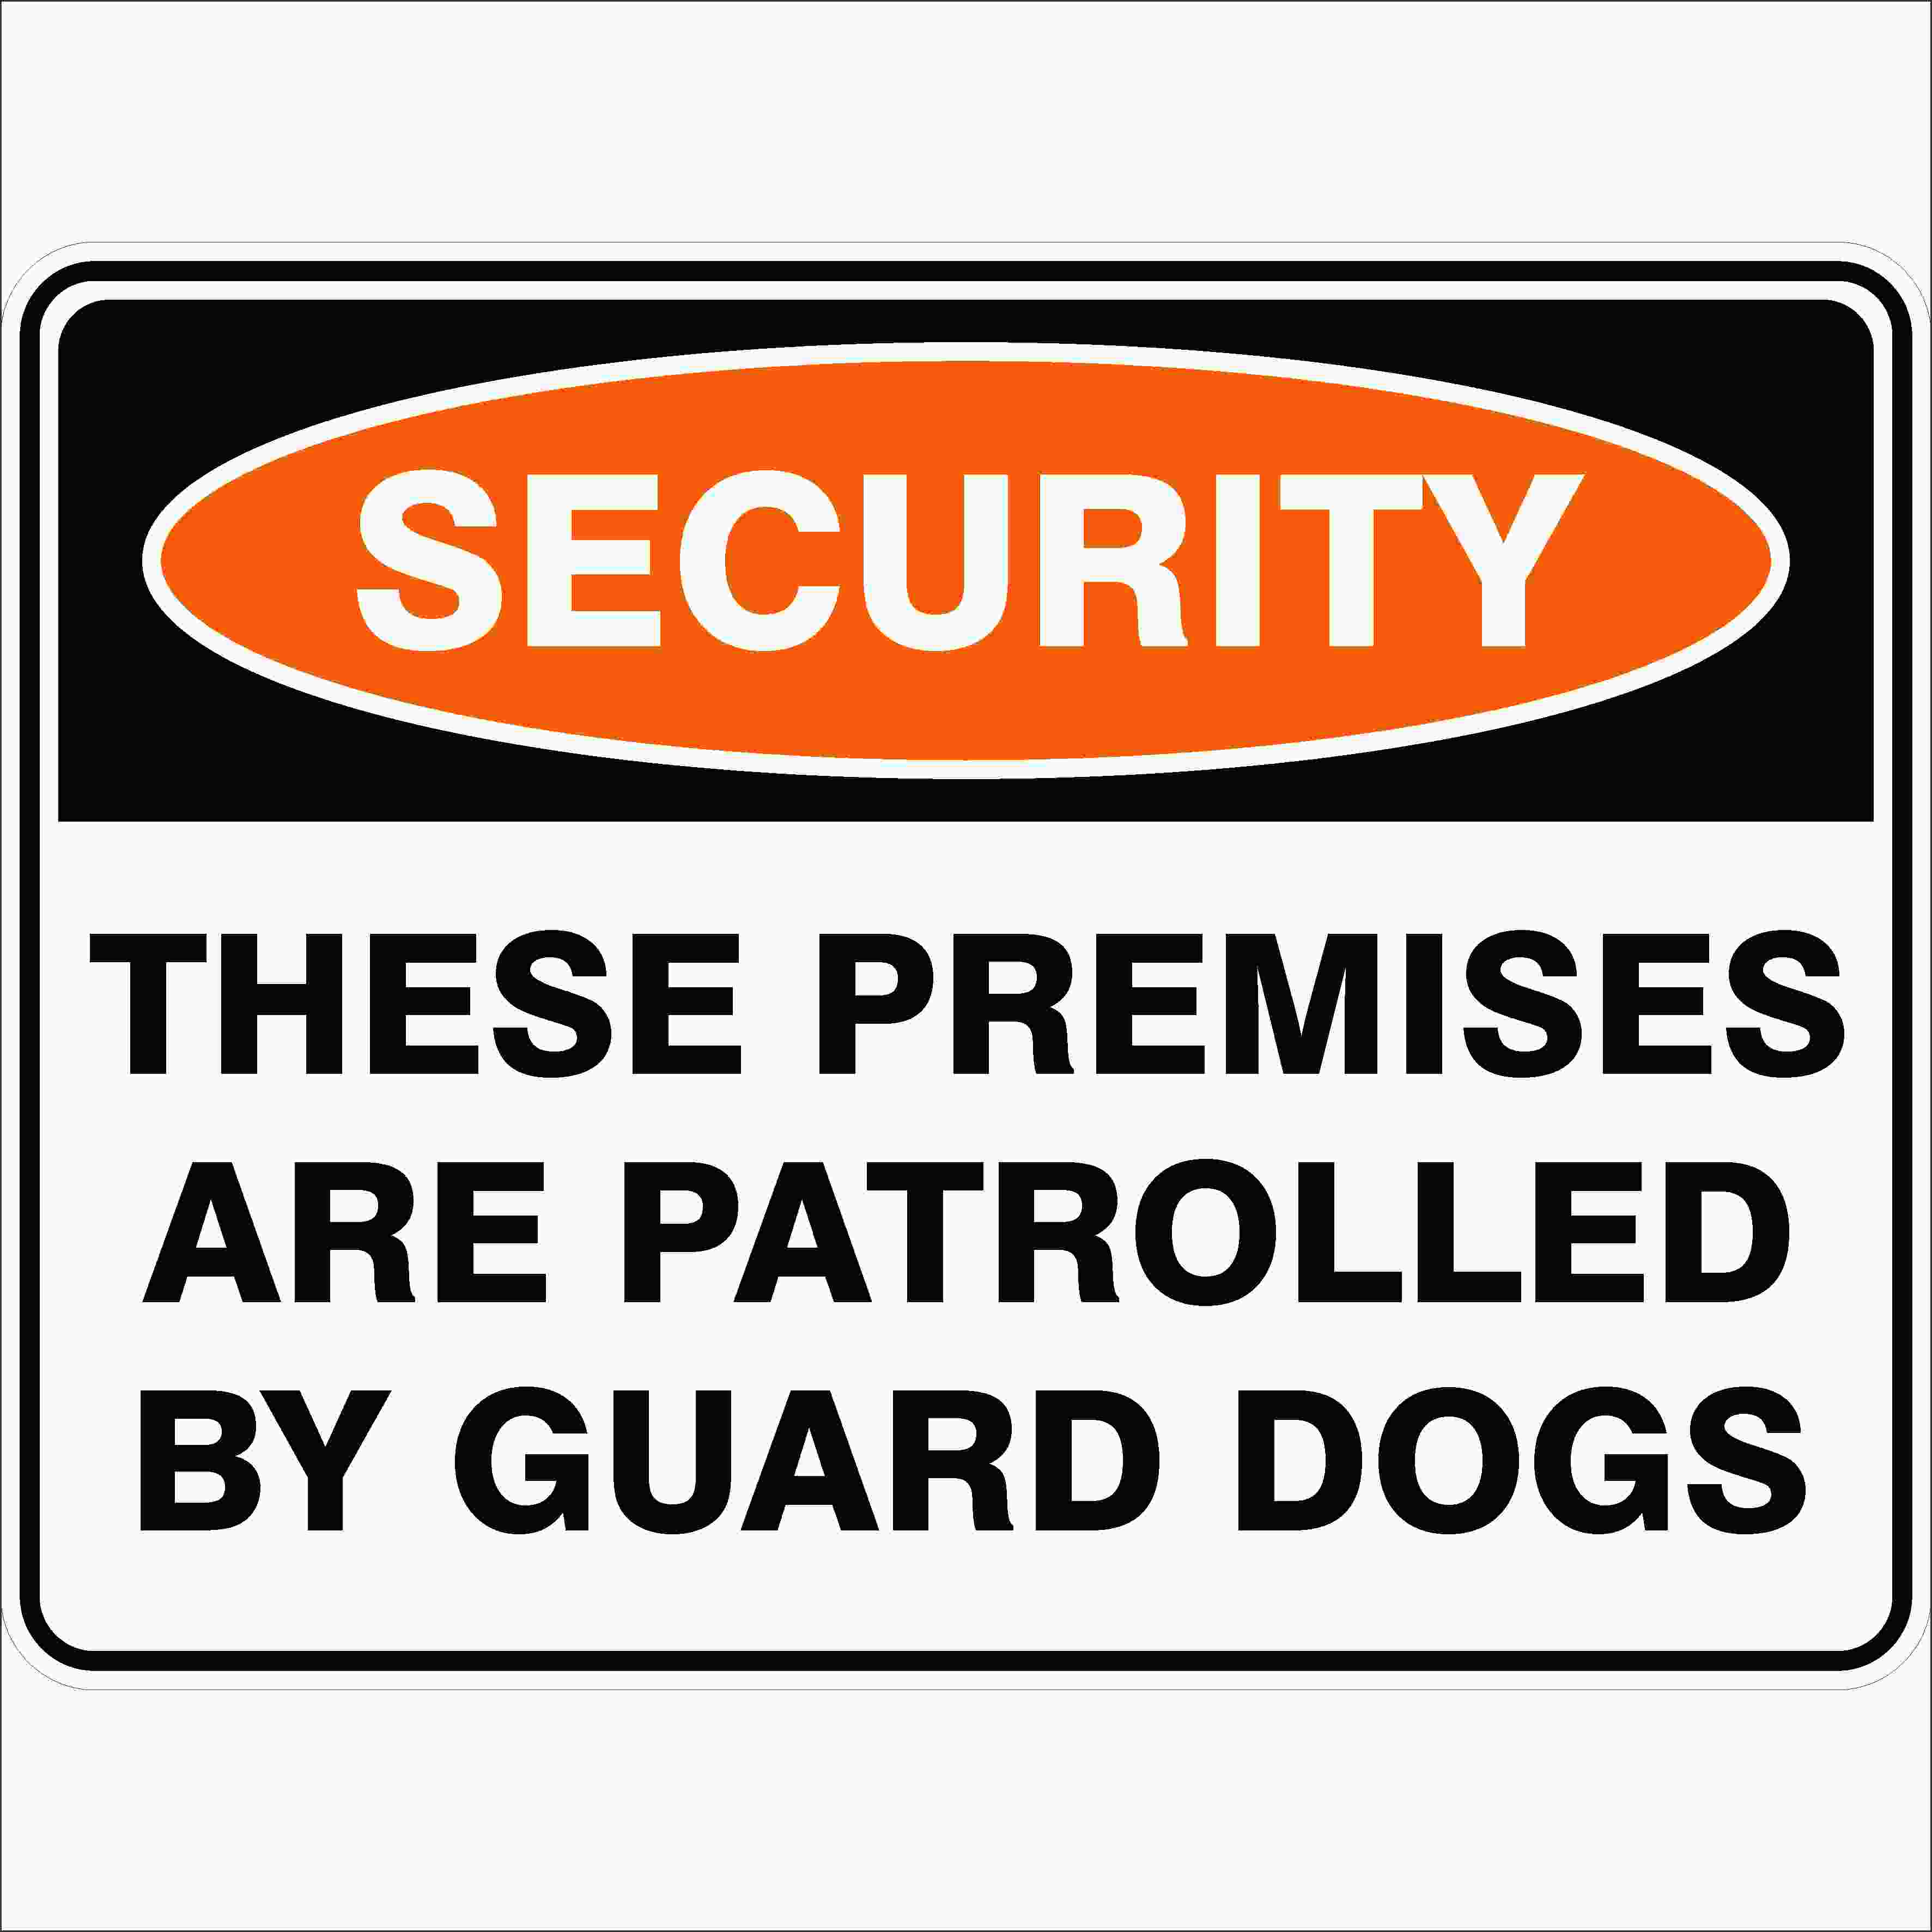 Security Signs THESE PREMISES ARE PATROLLED BY GUARD DOGS